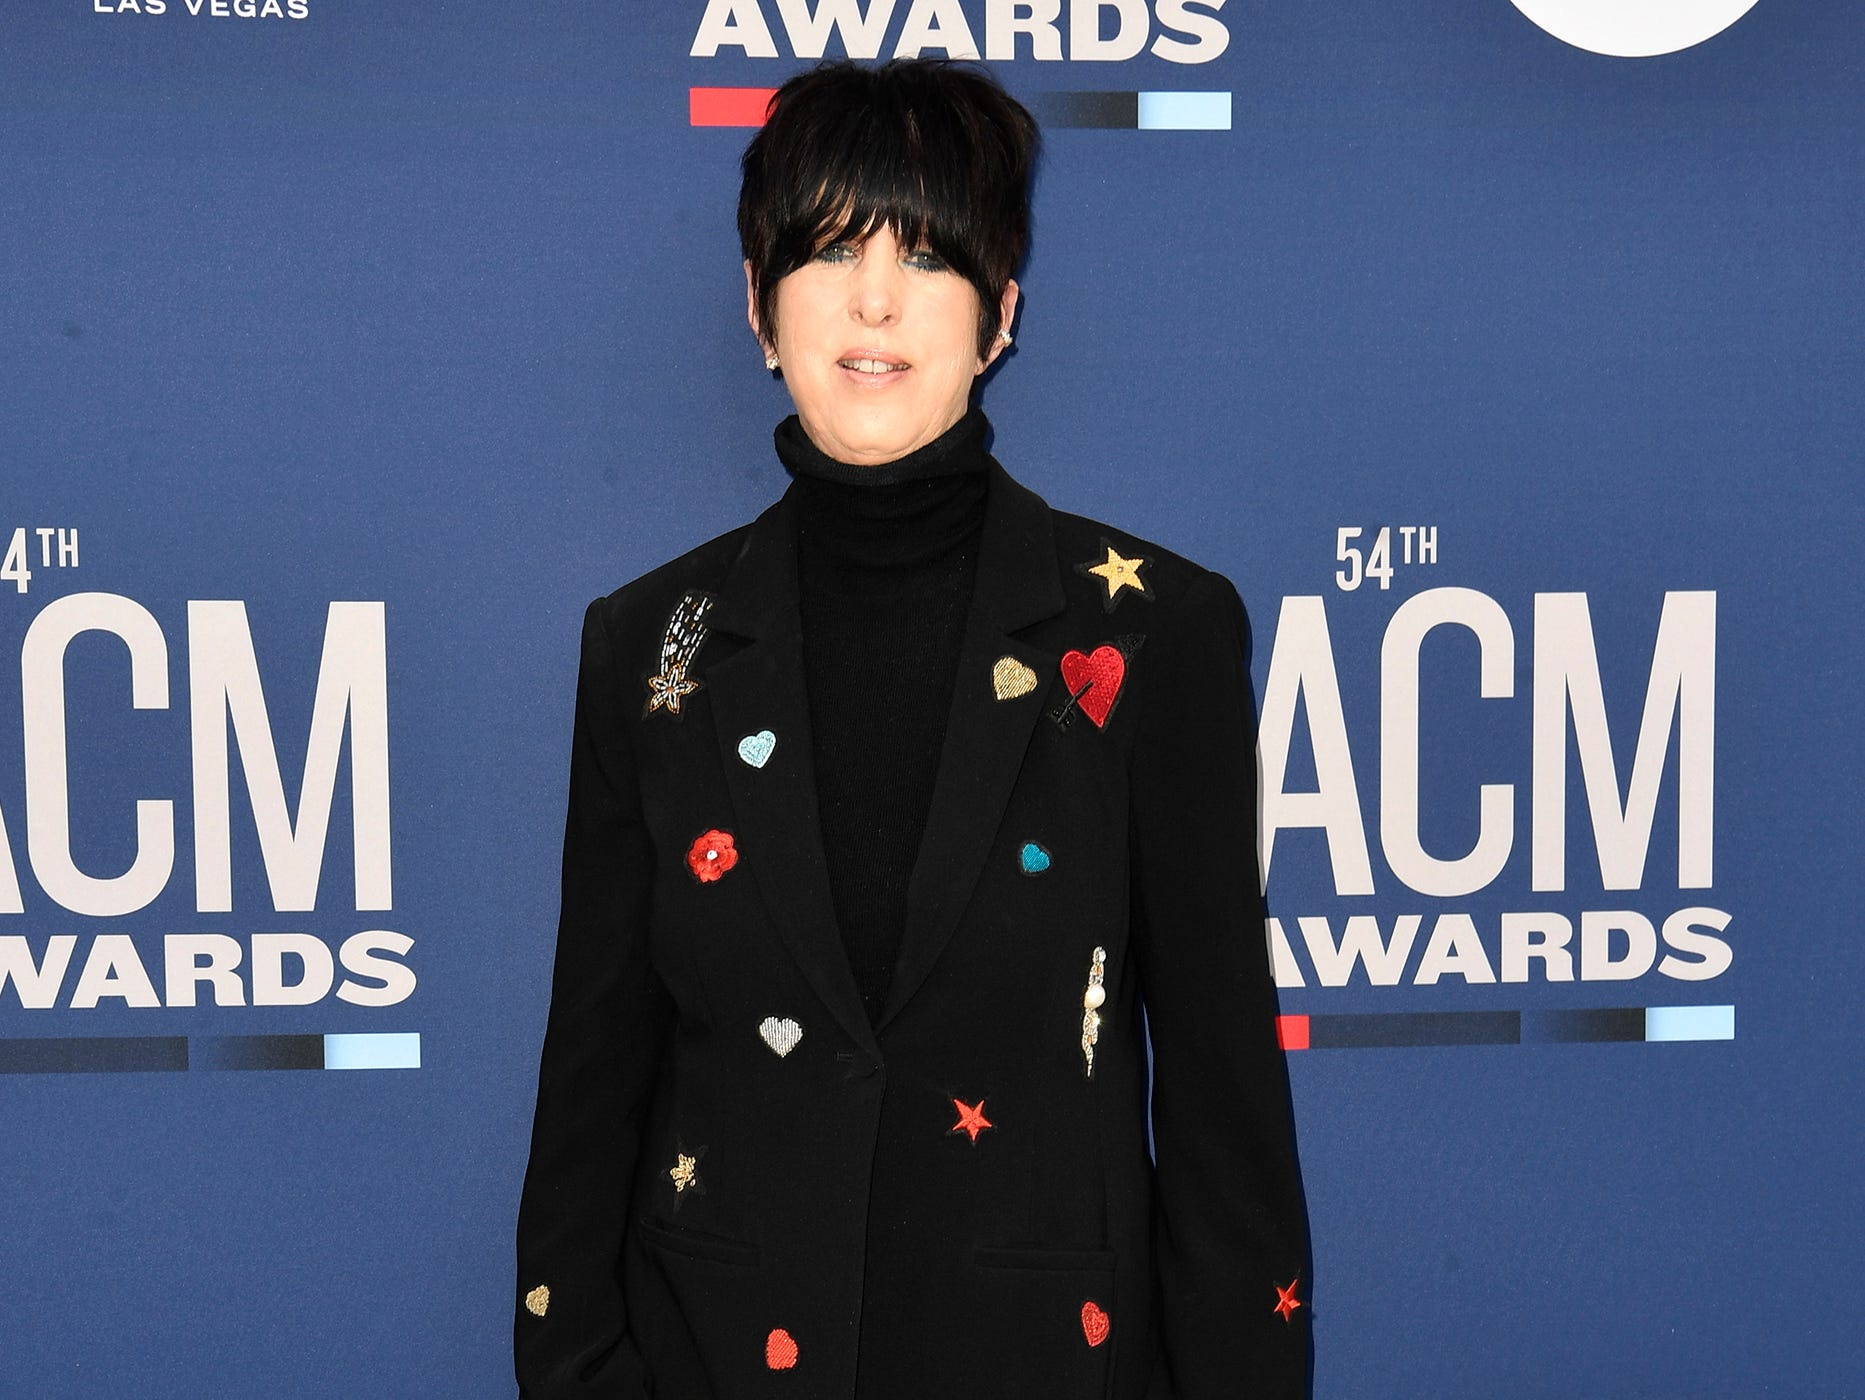 Diane Warren walks the red carpet at the 54TH Academy of Country Music Awards Sunday, April 7, 2019, in Las Vegas, Nev.